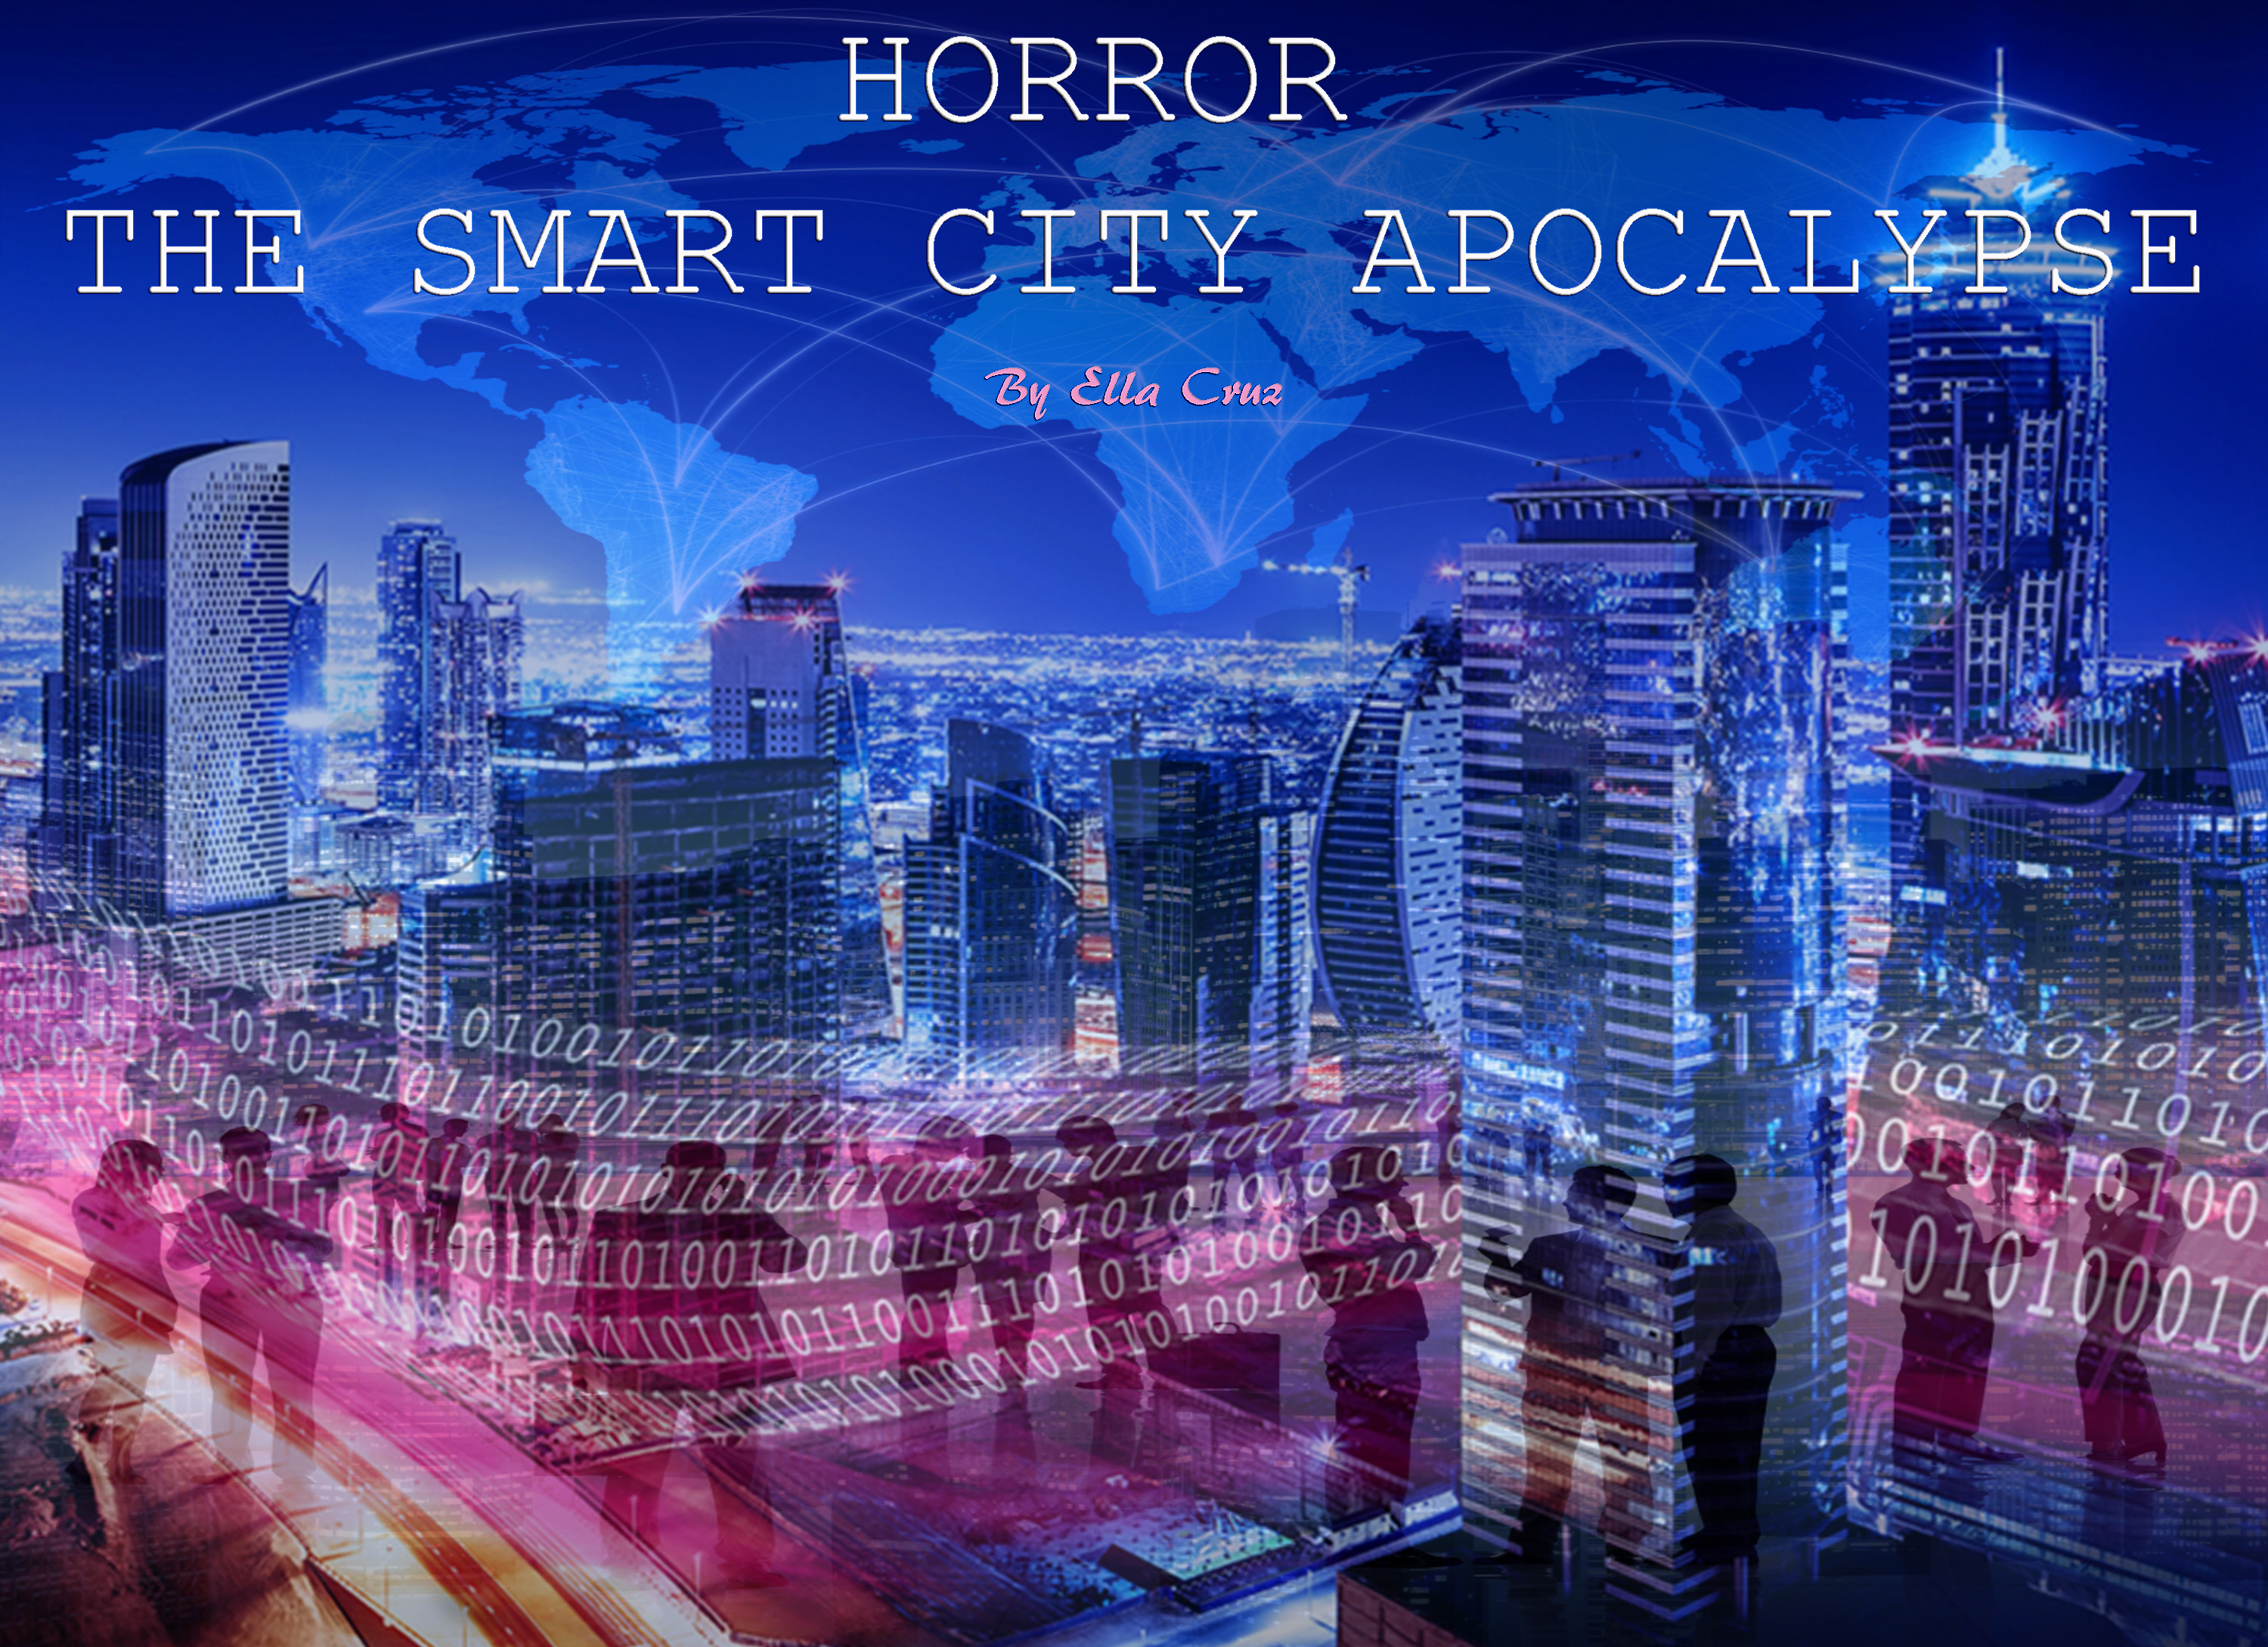 Horror: The Smart City Apocalypse